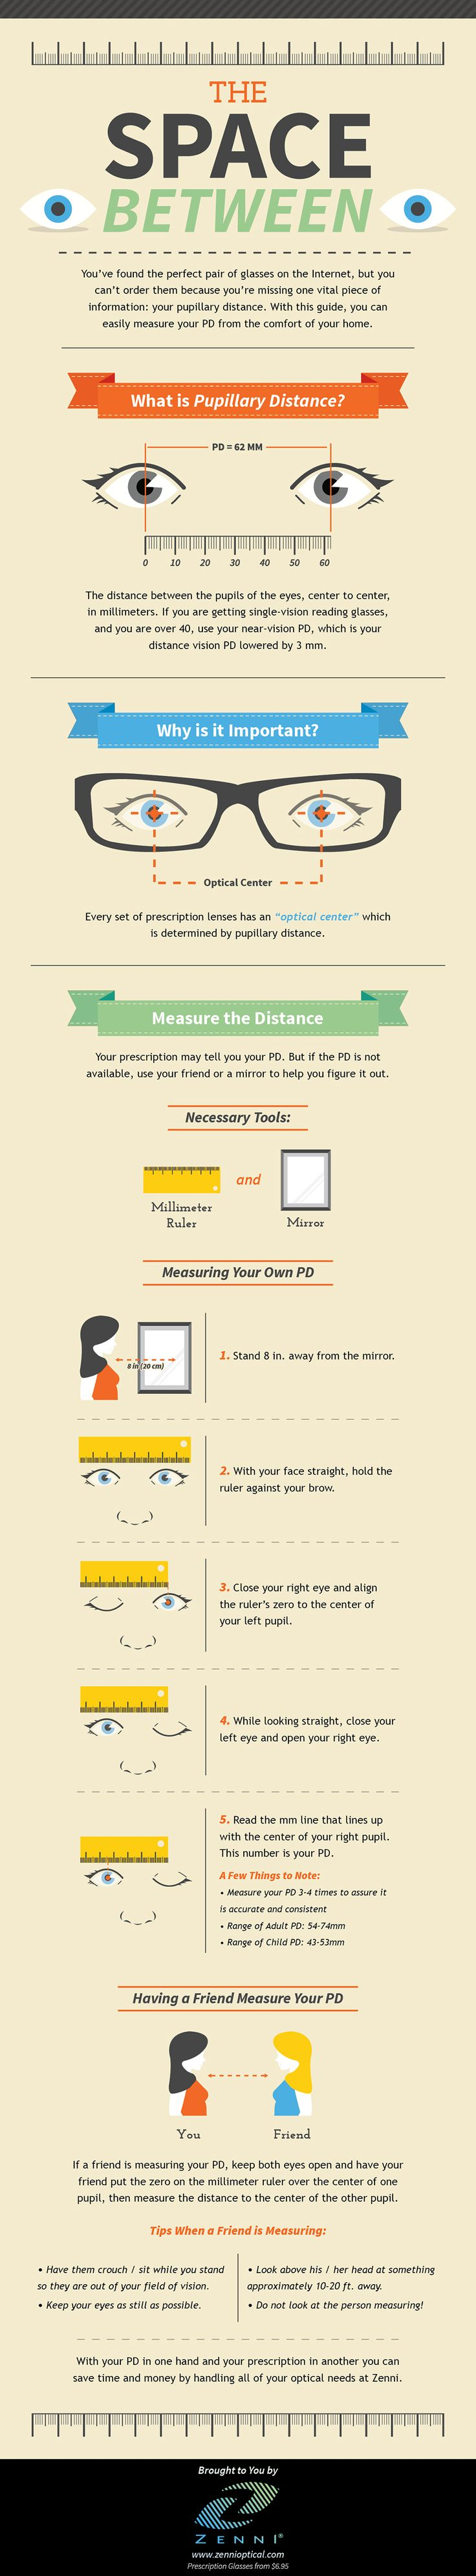 How to Measure Your Pupillary Distance (PD) - Do you fancy an infographic? There are a lot of them online, but if you want your own please visithttp://linfografico.com/en/prices/ Online girano molte infografiche, se ne vuoi realizzare una tutta tua visitahttp://www.linfografico.com/prezzi/